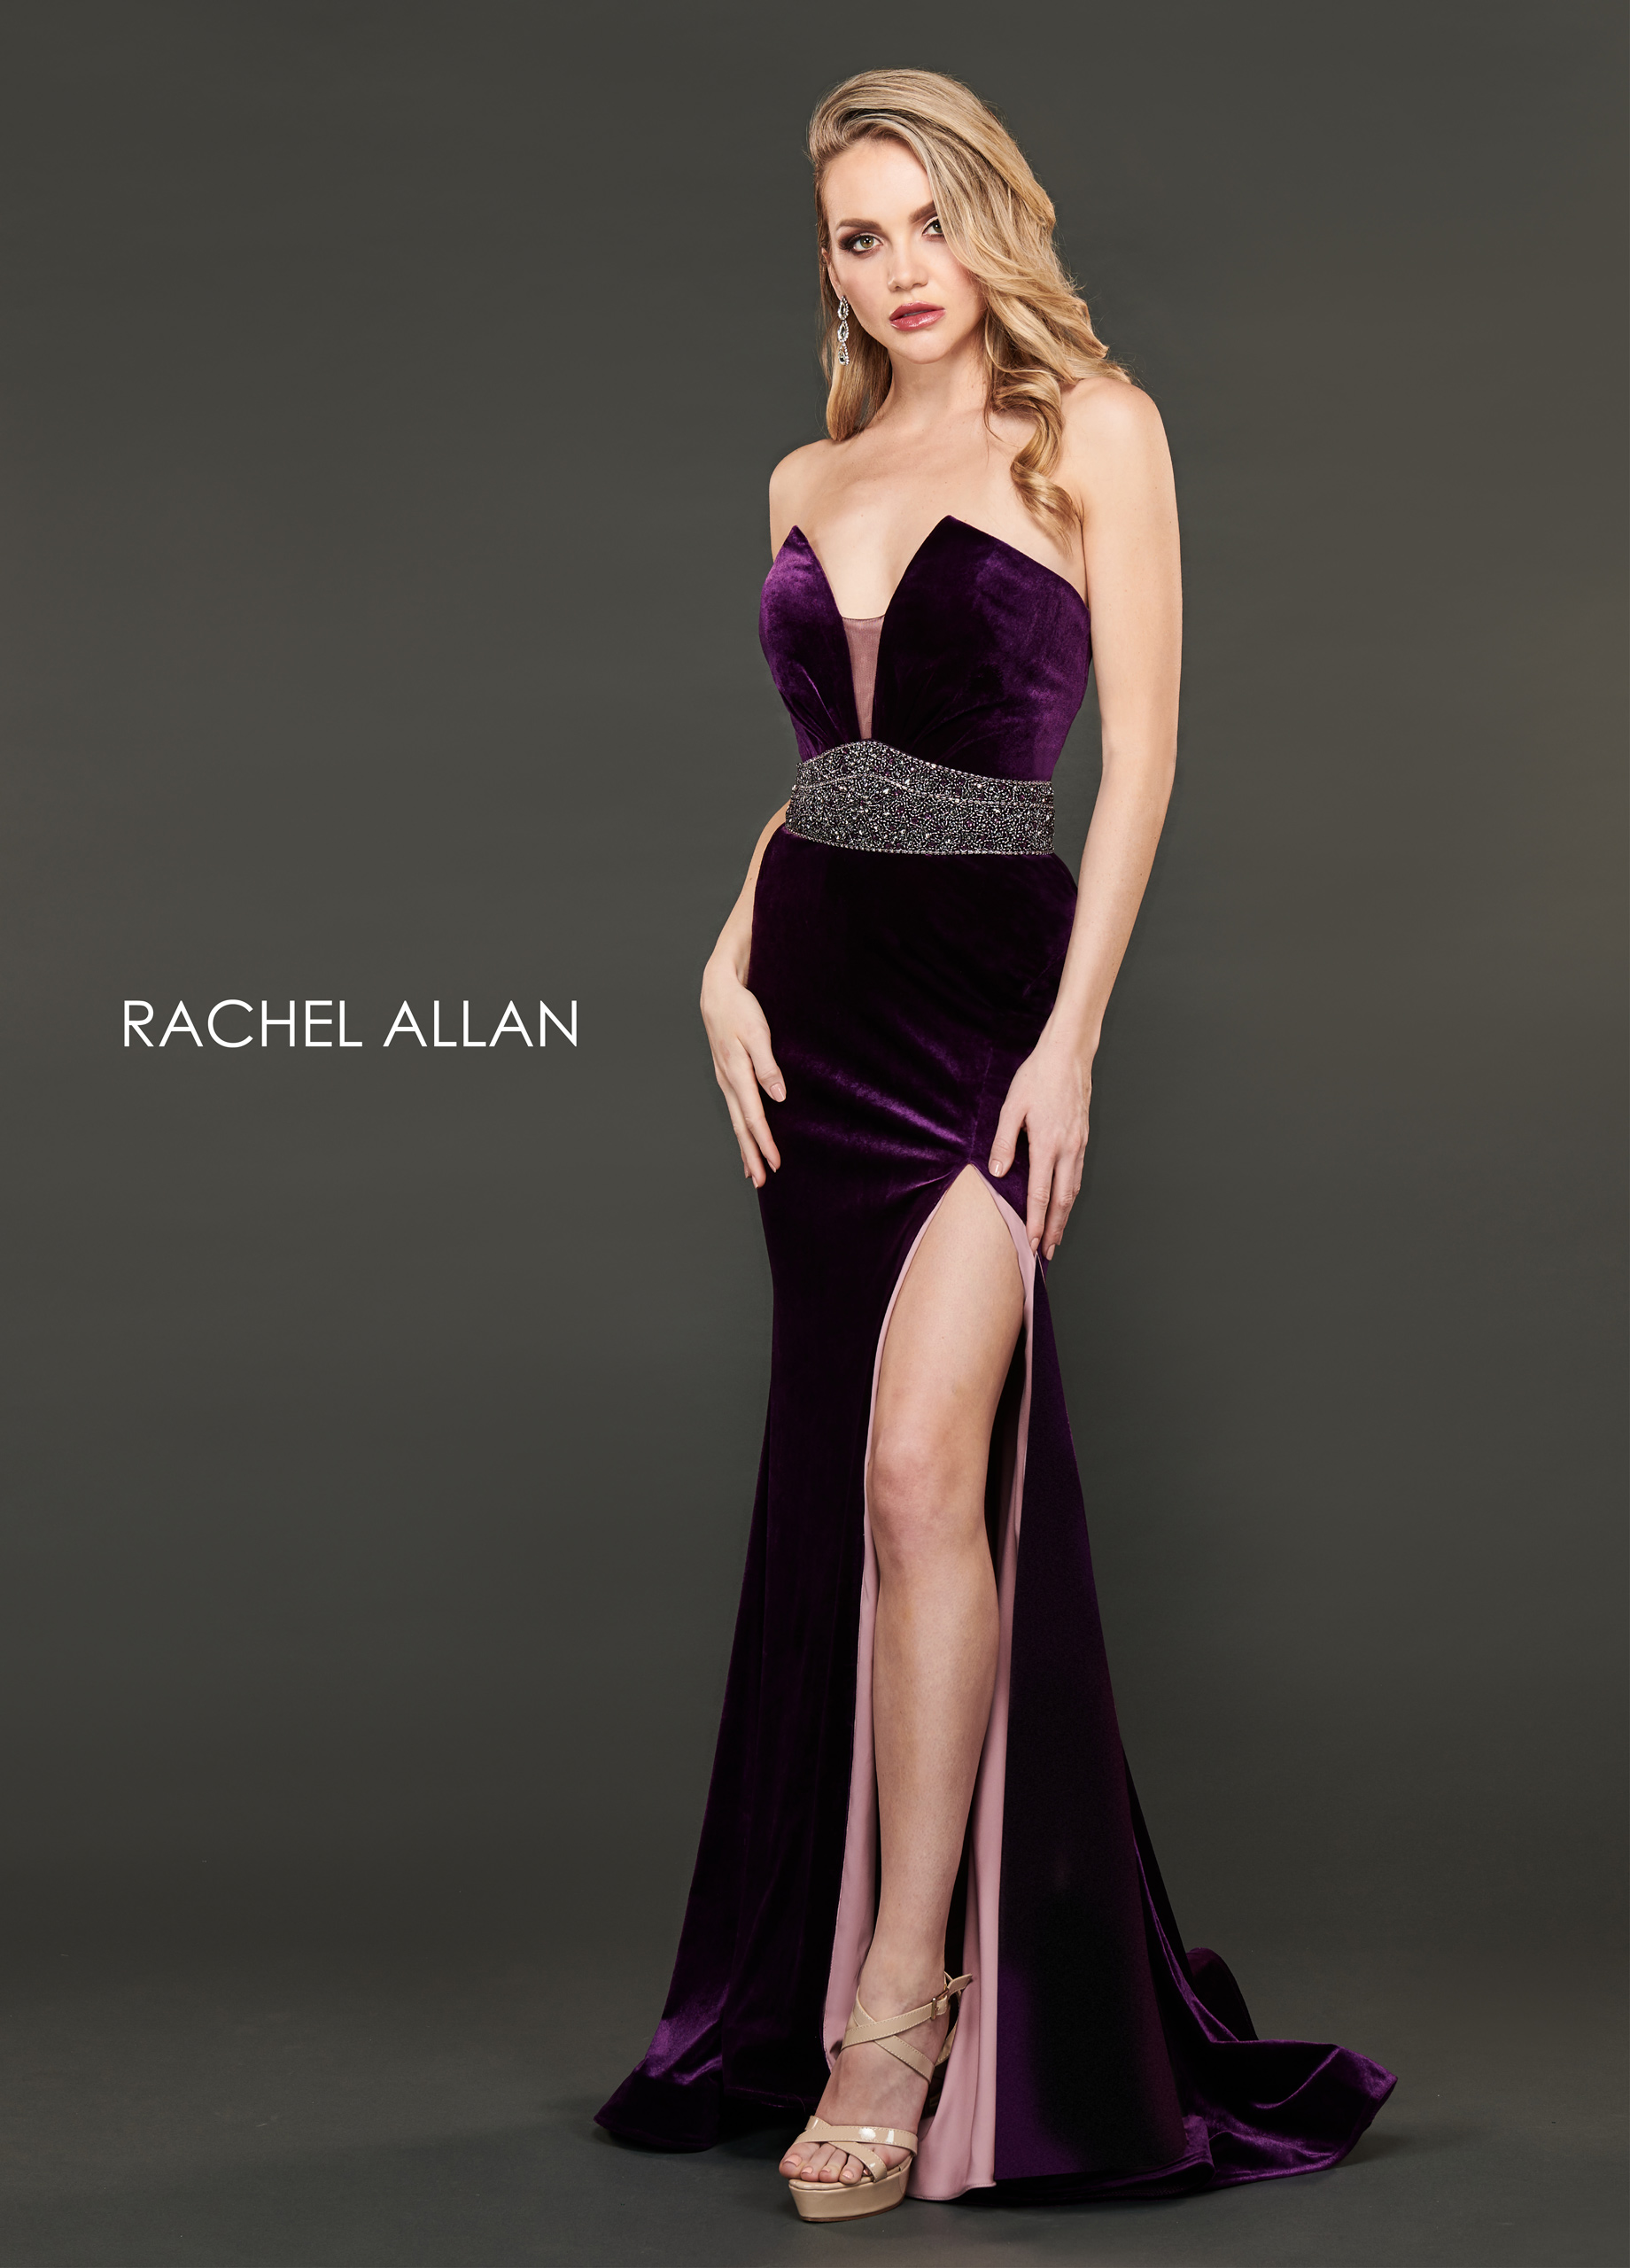 Strapless Fit & Flare Couture Dresses in Purple Color